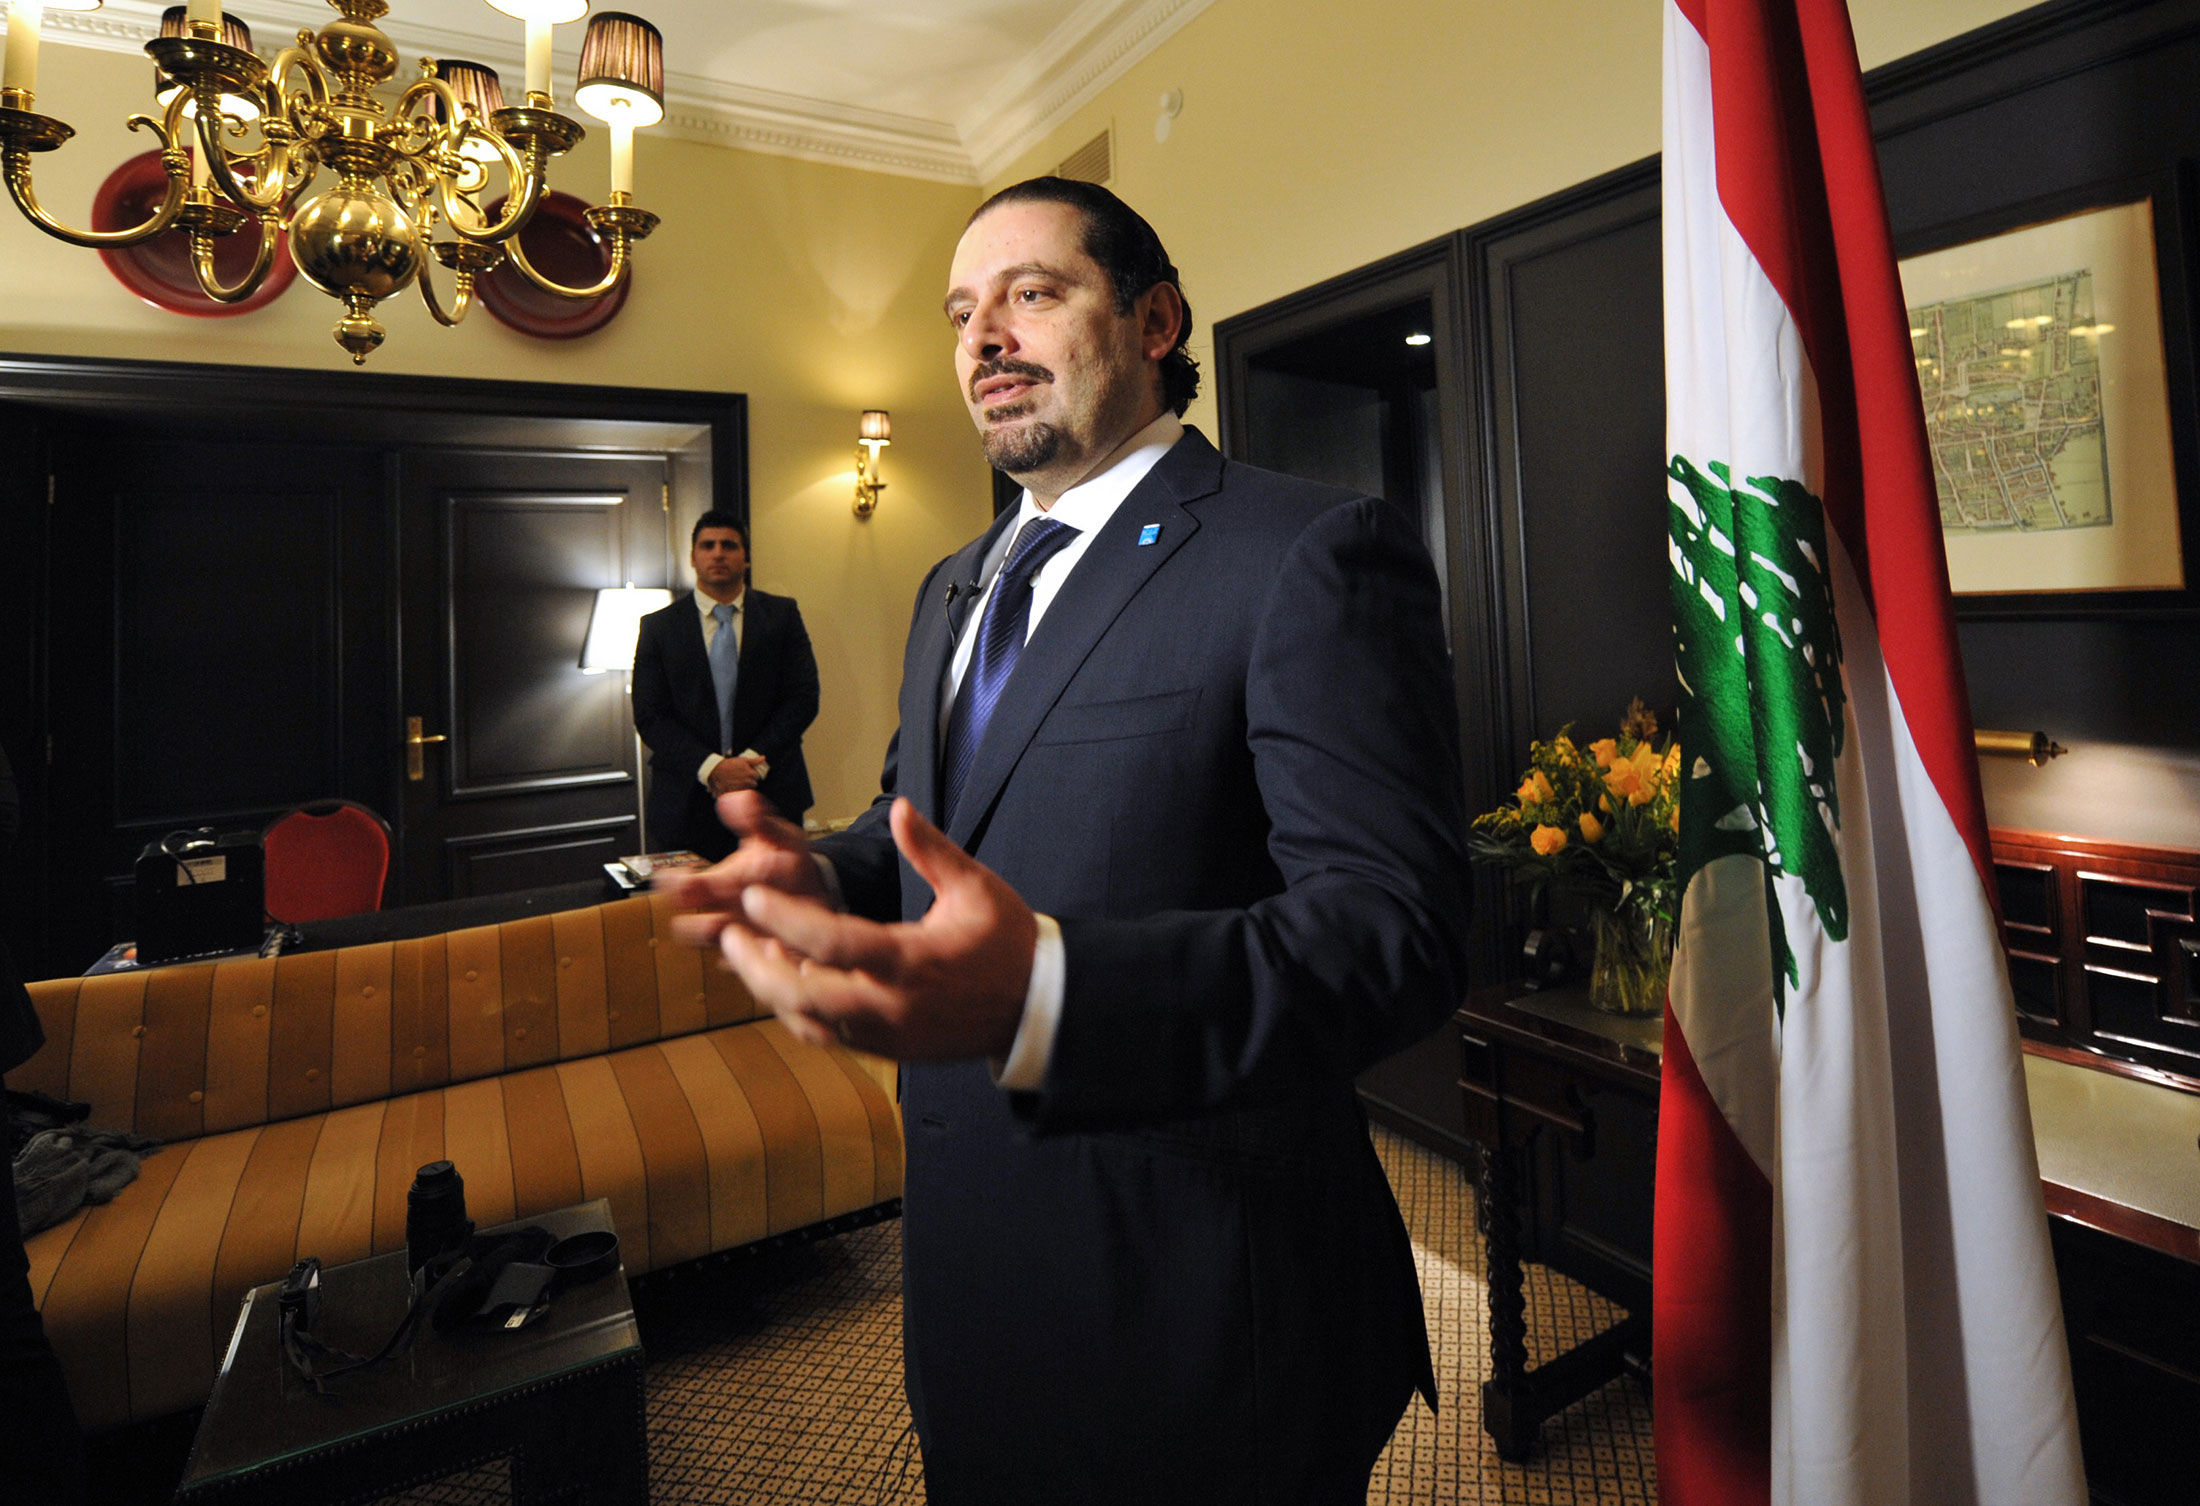 Il premier libanese Saad Hariri. Credits to: AFP/Getty Images.